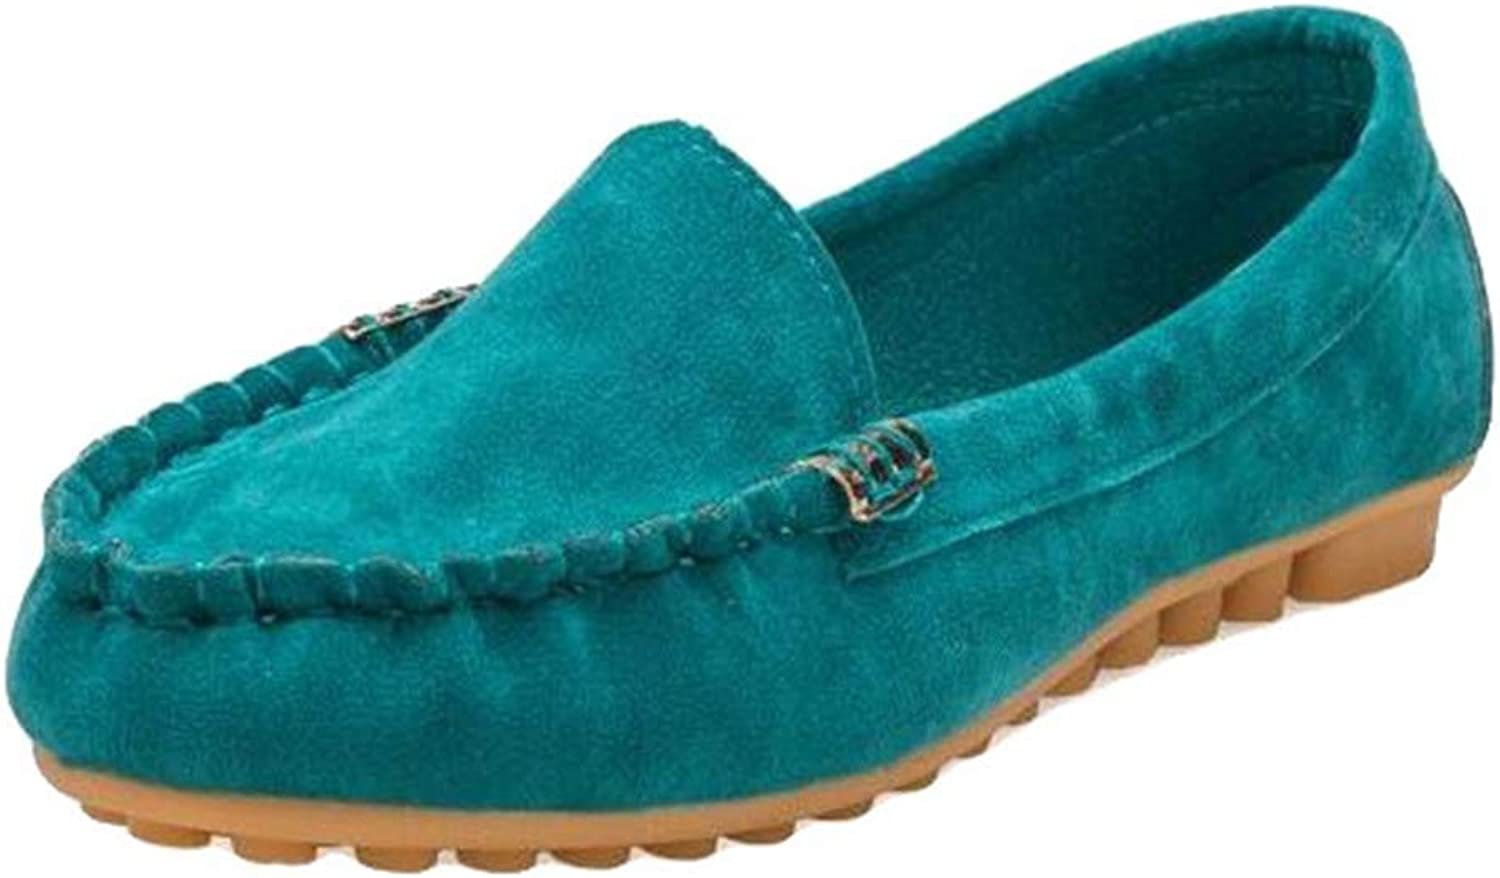 Kyle Walsh Pa Women Flats Woman Loafers Candy color Slip on Flat shoes Ballet Flats Comfortable Ladies shoes